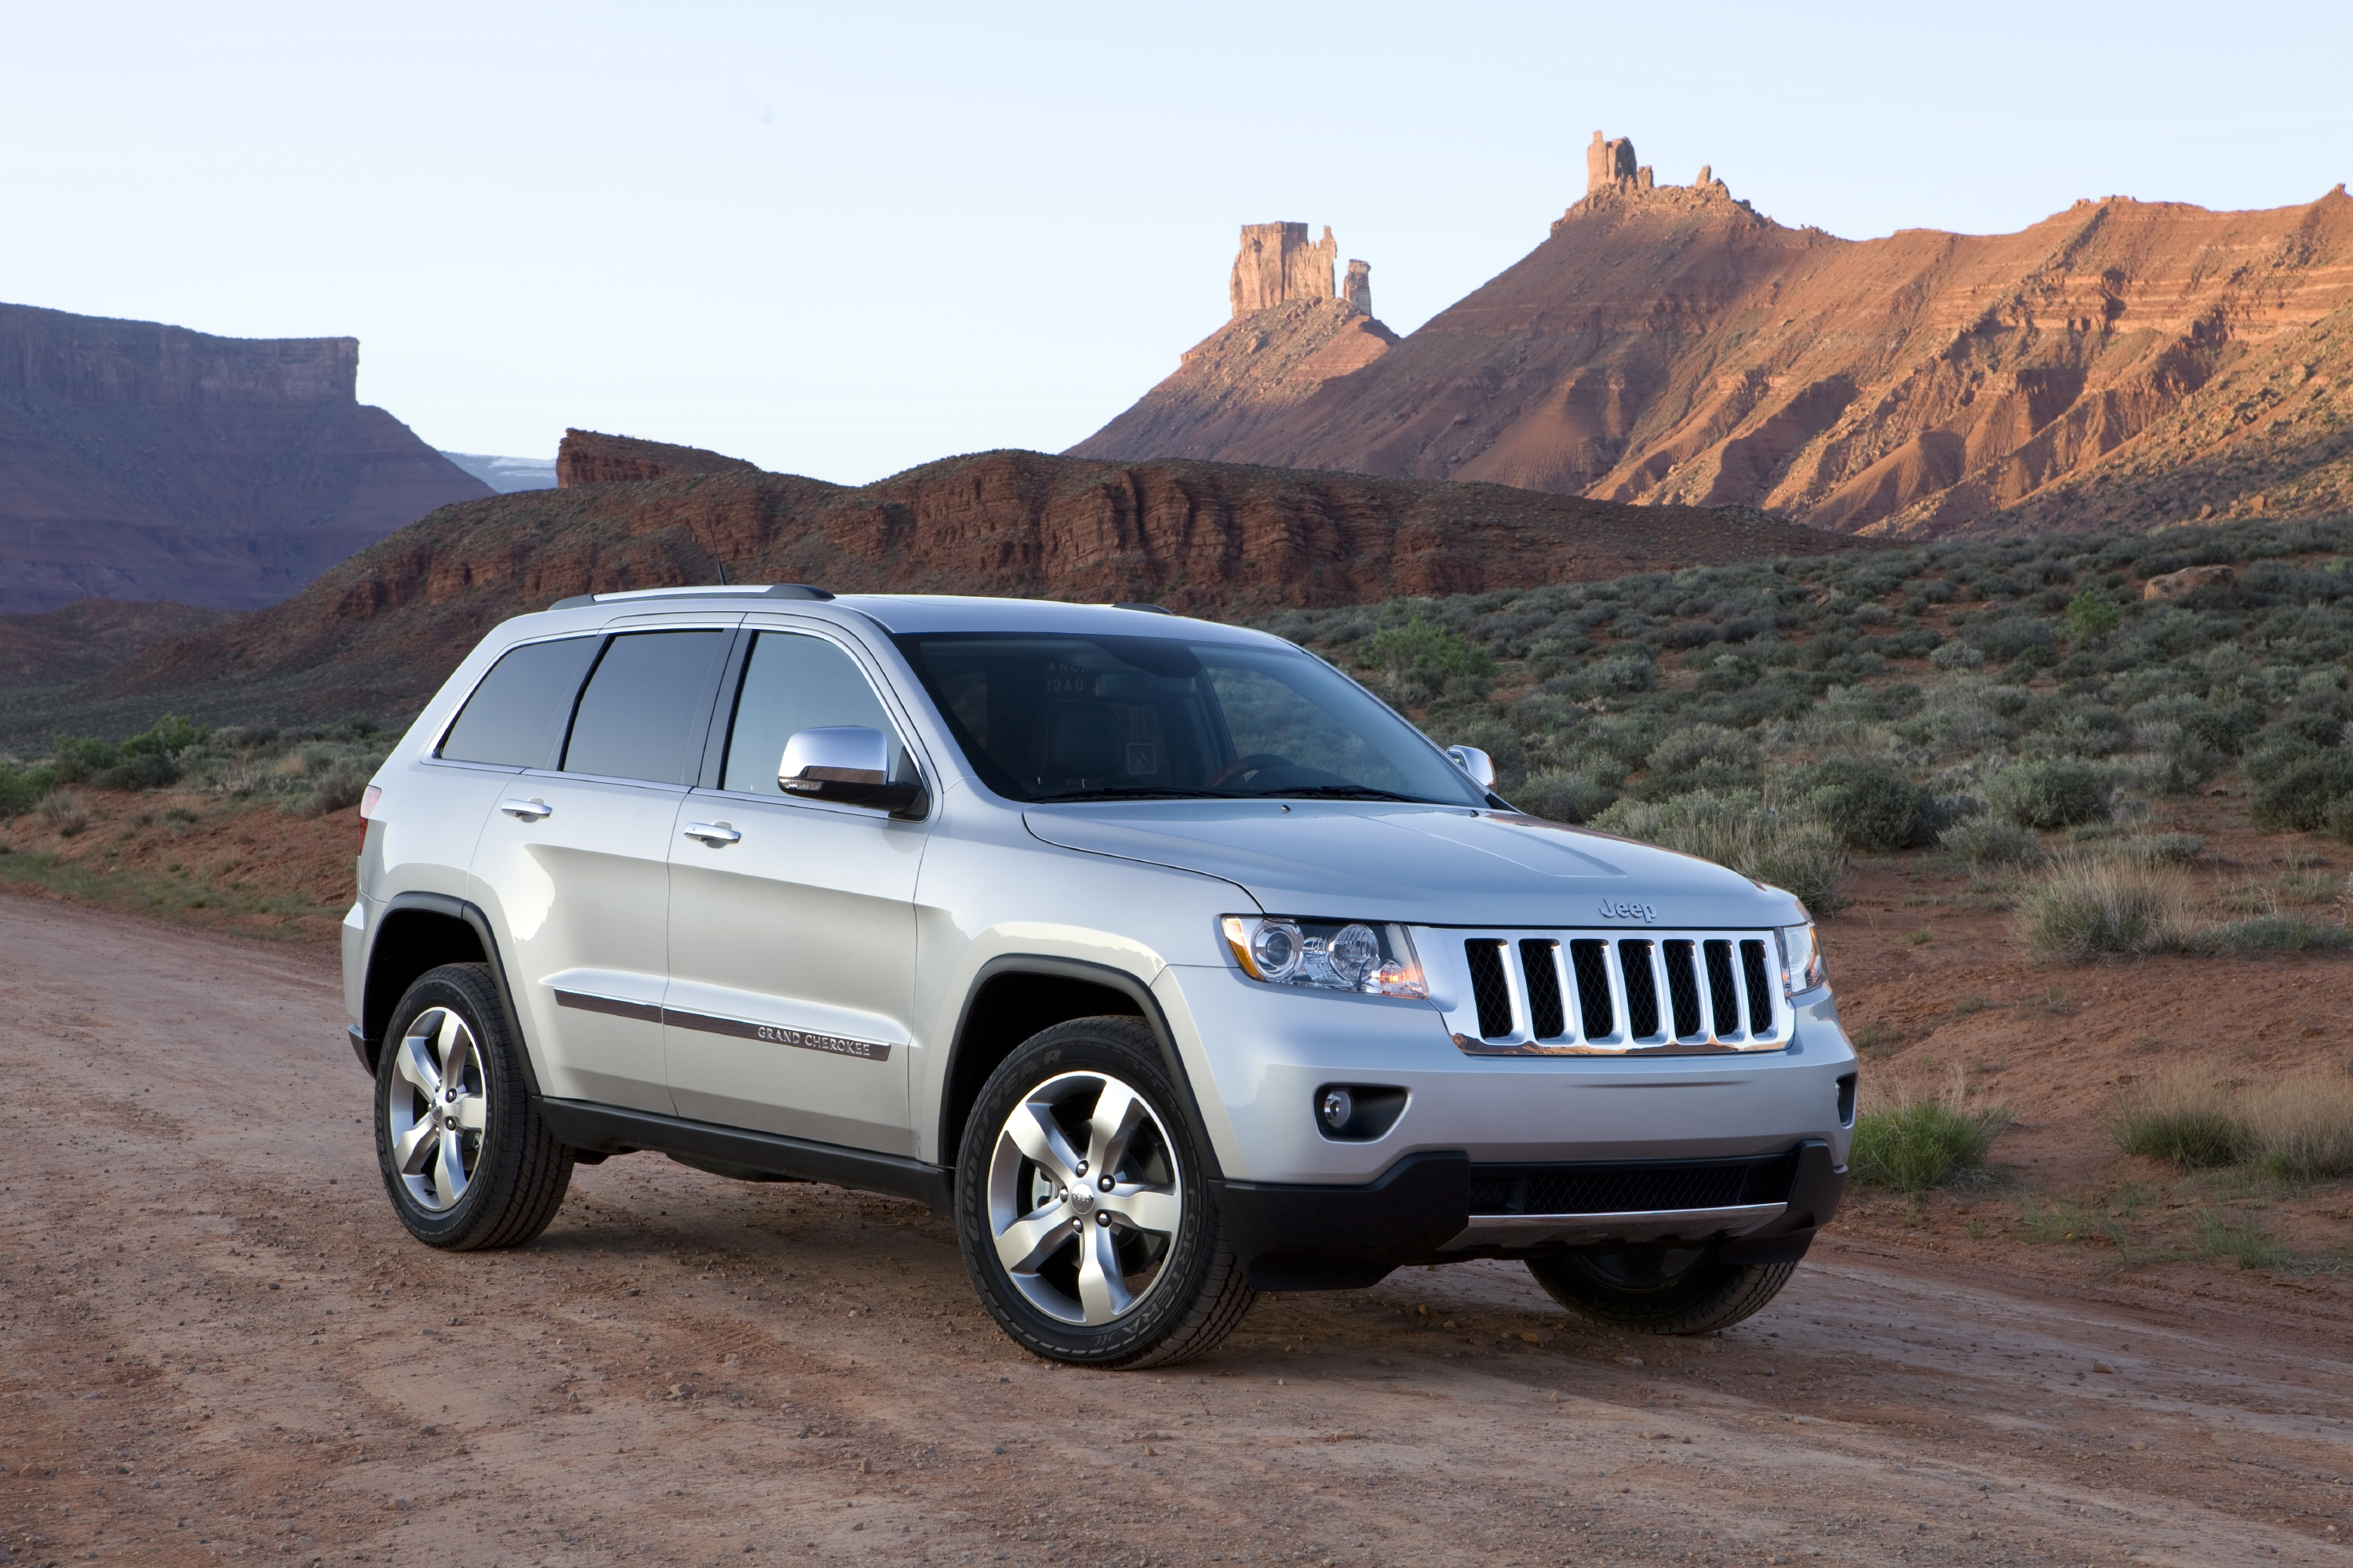 2011 jeep grand cherokee overland road reality. Black Bedroom Furniture Sets. Home Design Ideas